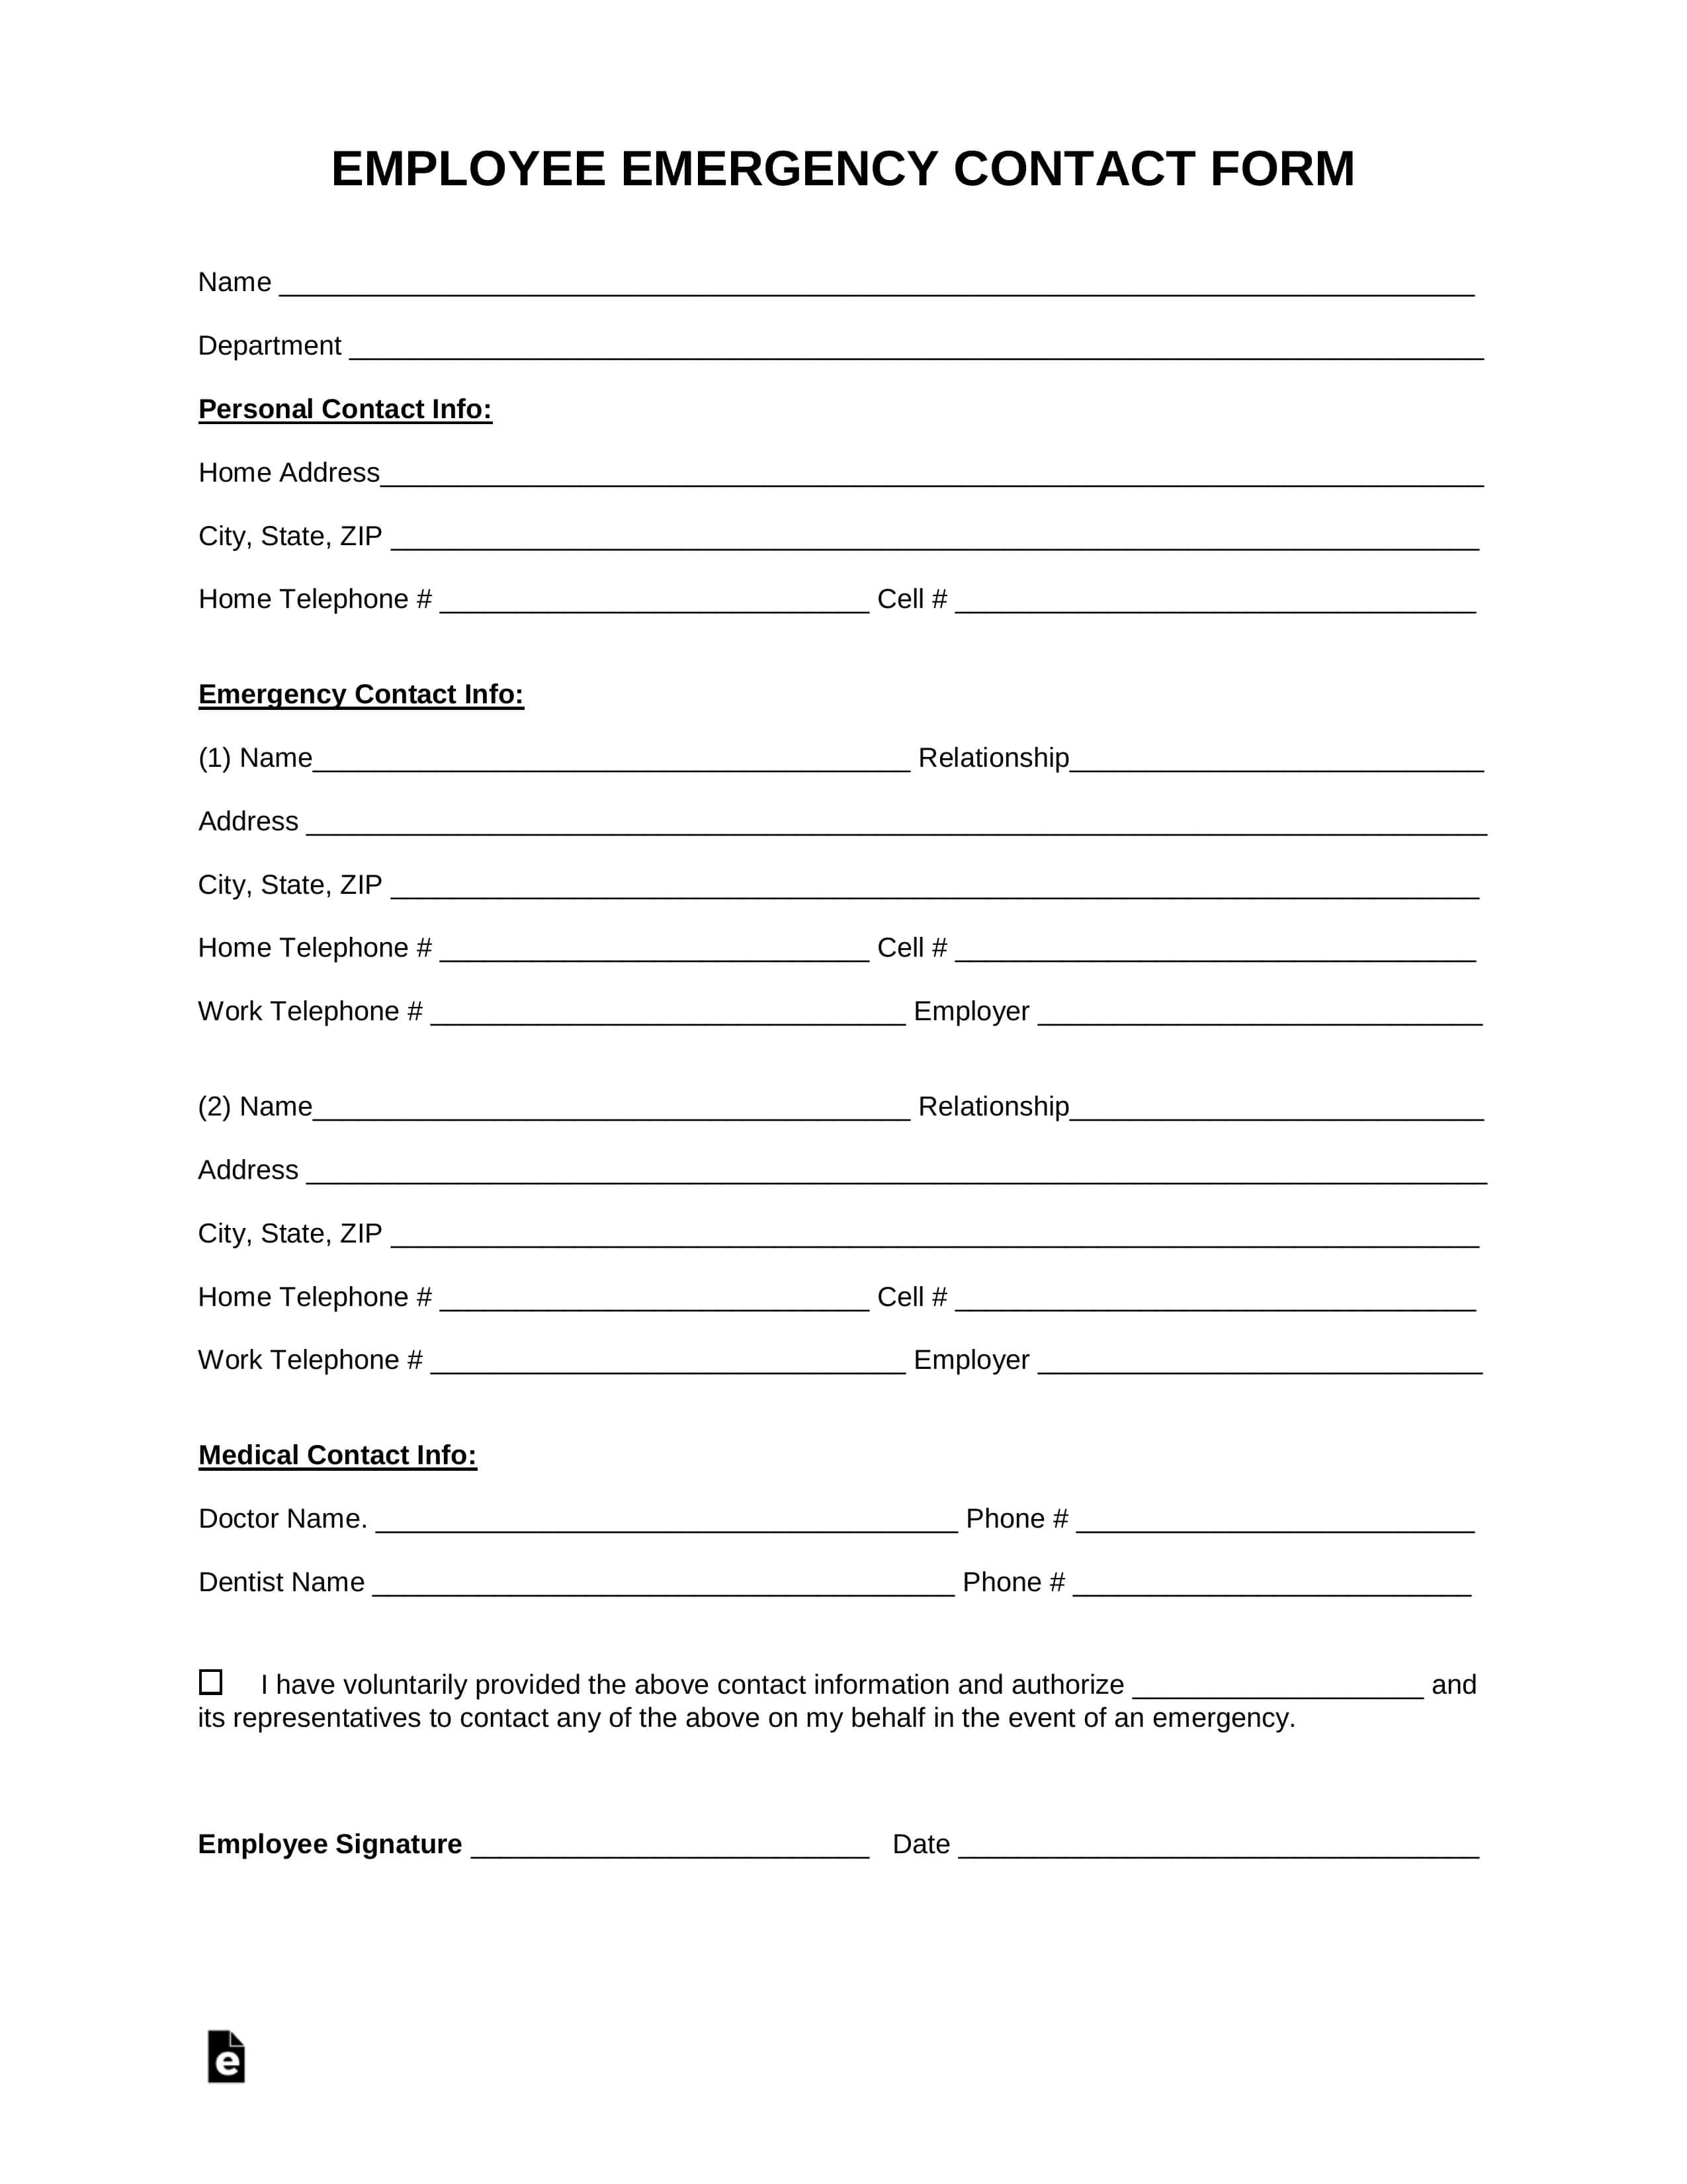 Free Employee Emergency Contact Form - Pdf | Word | Eforms inside Emergency Contact Card Template